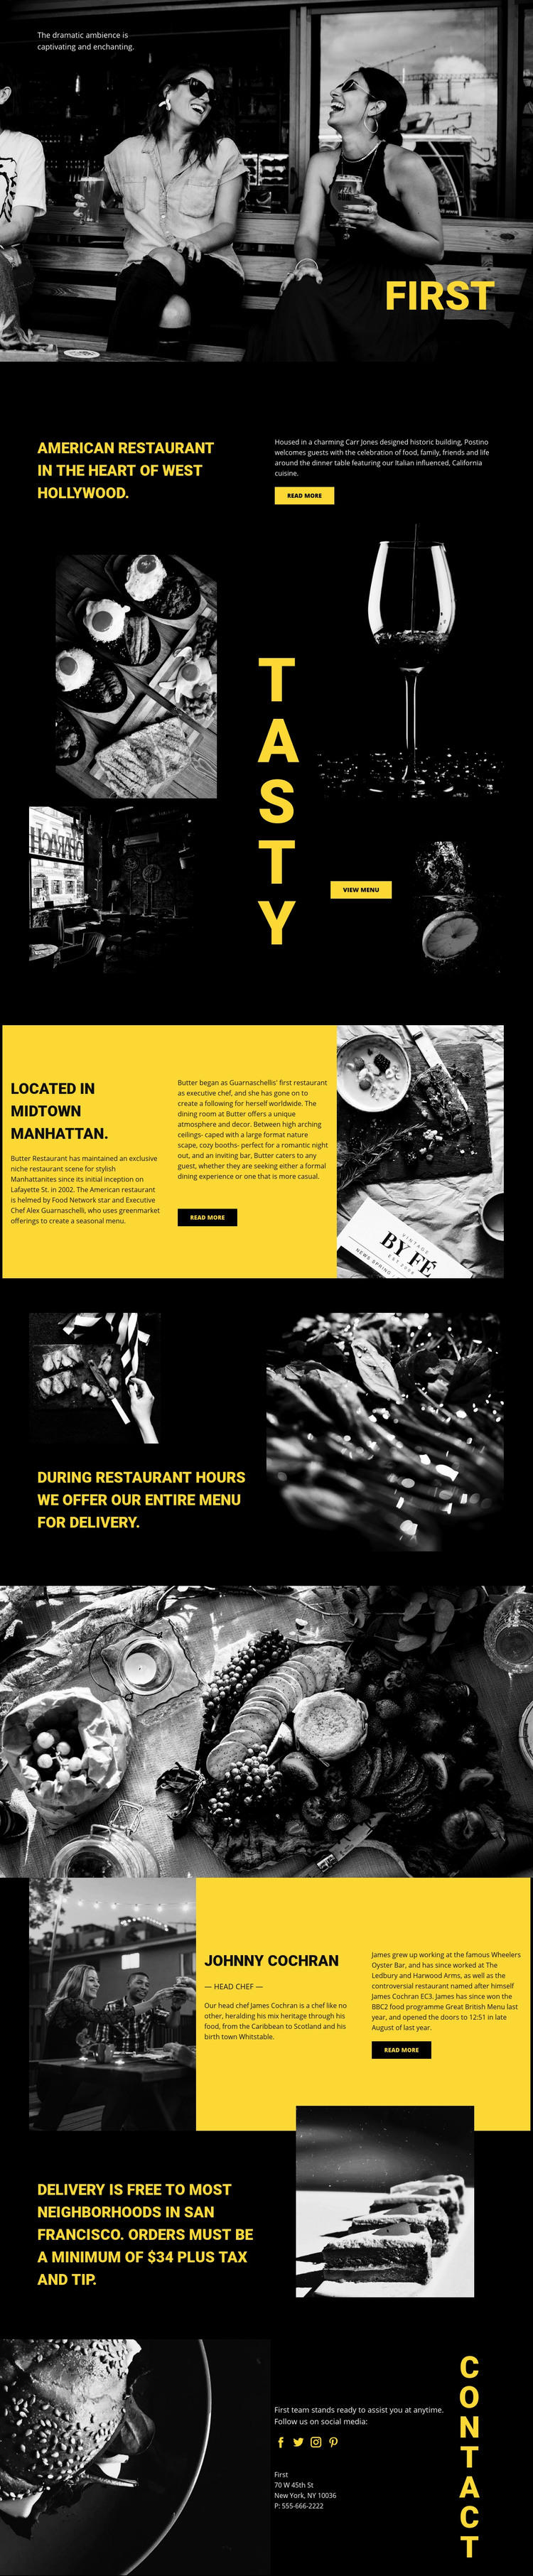 World's best restaurant Homepage Design